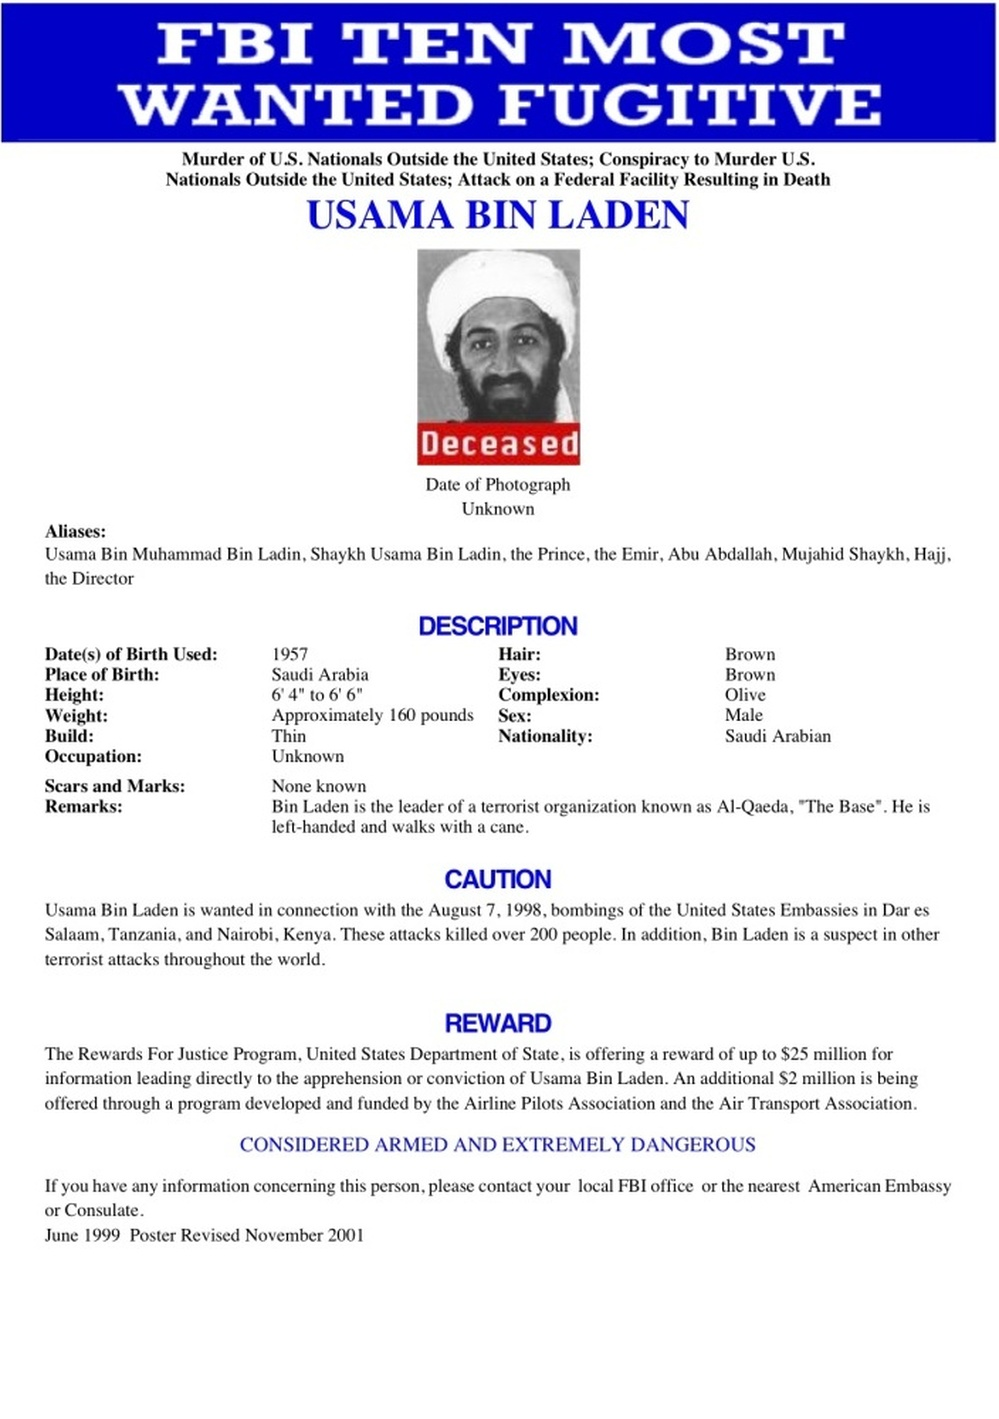 The FBI's Most Wanted poster for Osama bin Laden.